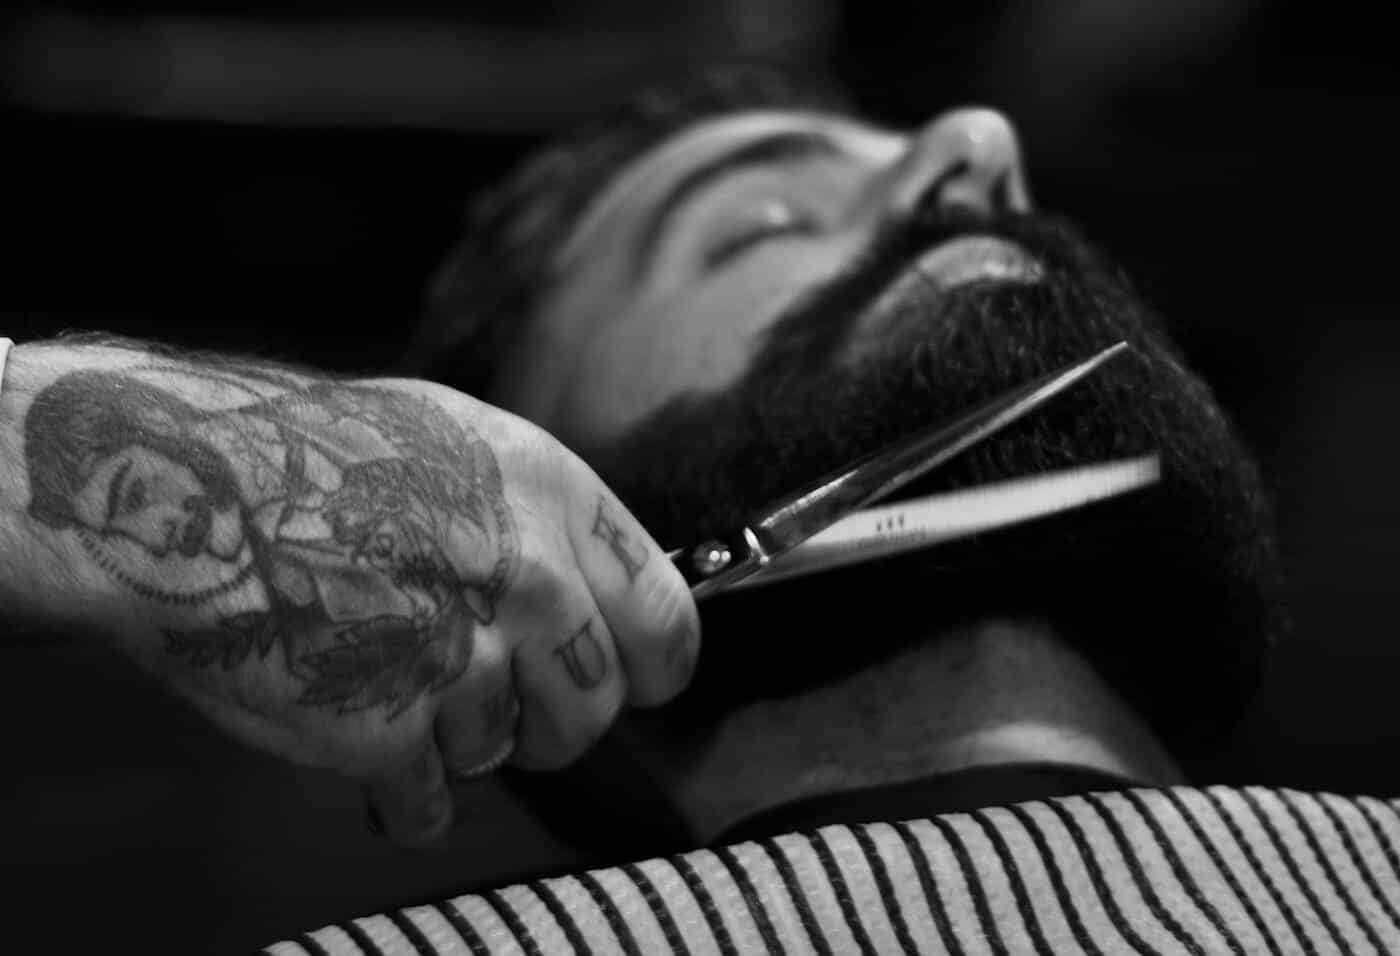 Man Getting His Beard Shaved